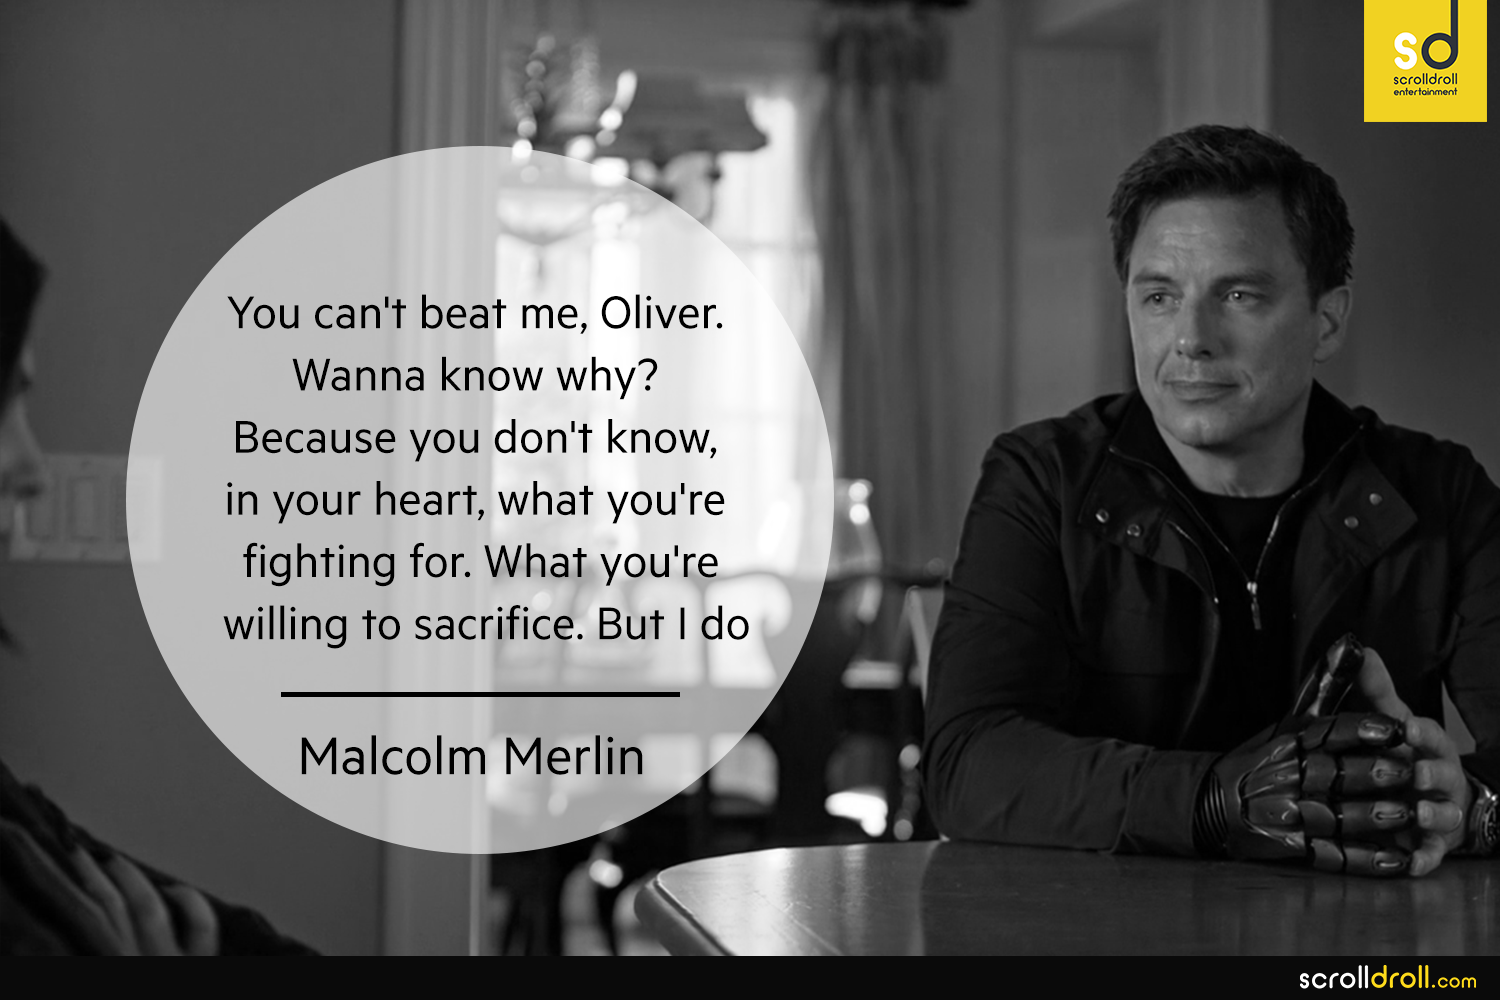 Popular Quotes Pinterest: Best Dialogues From Arrow That Are Actually Inspiring